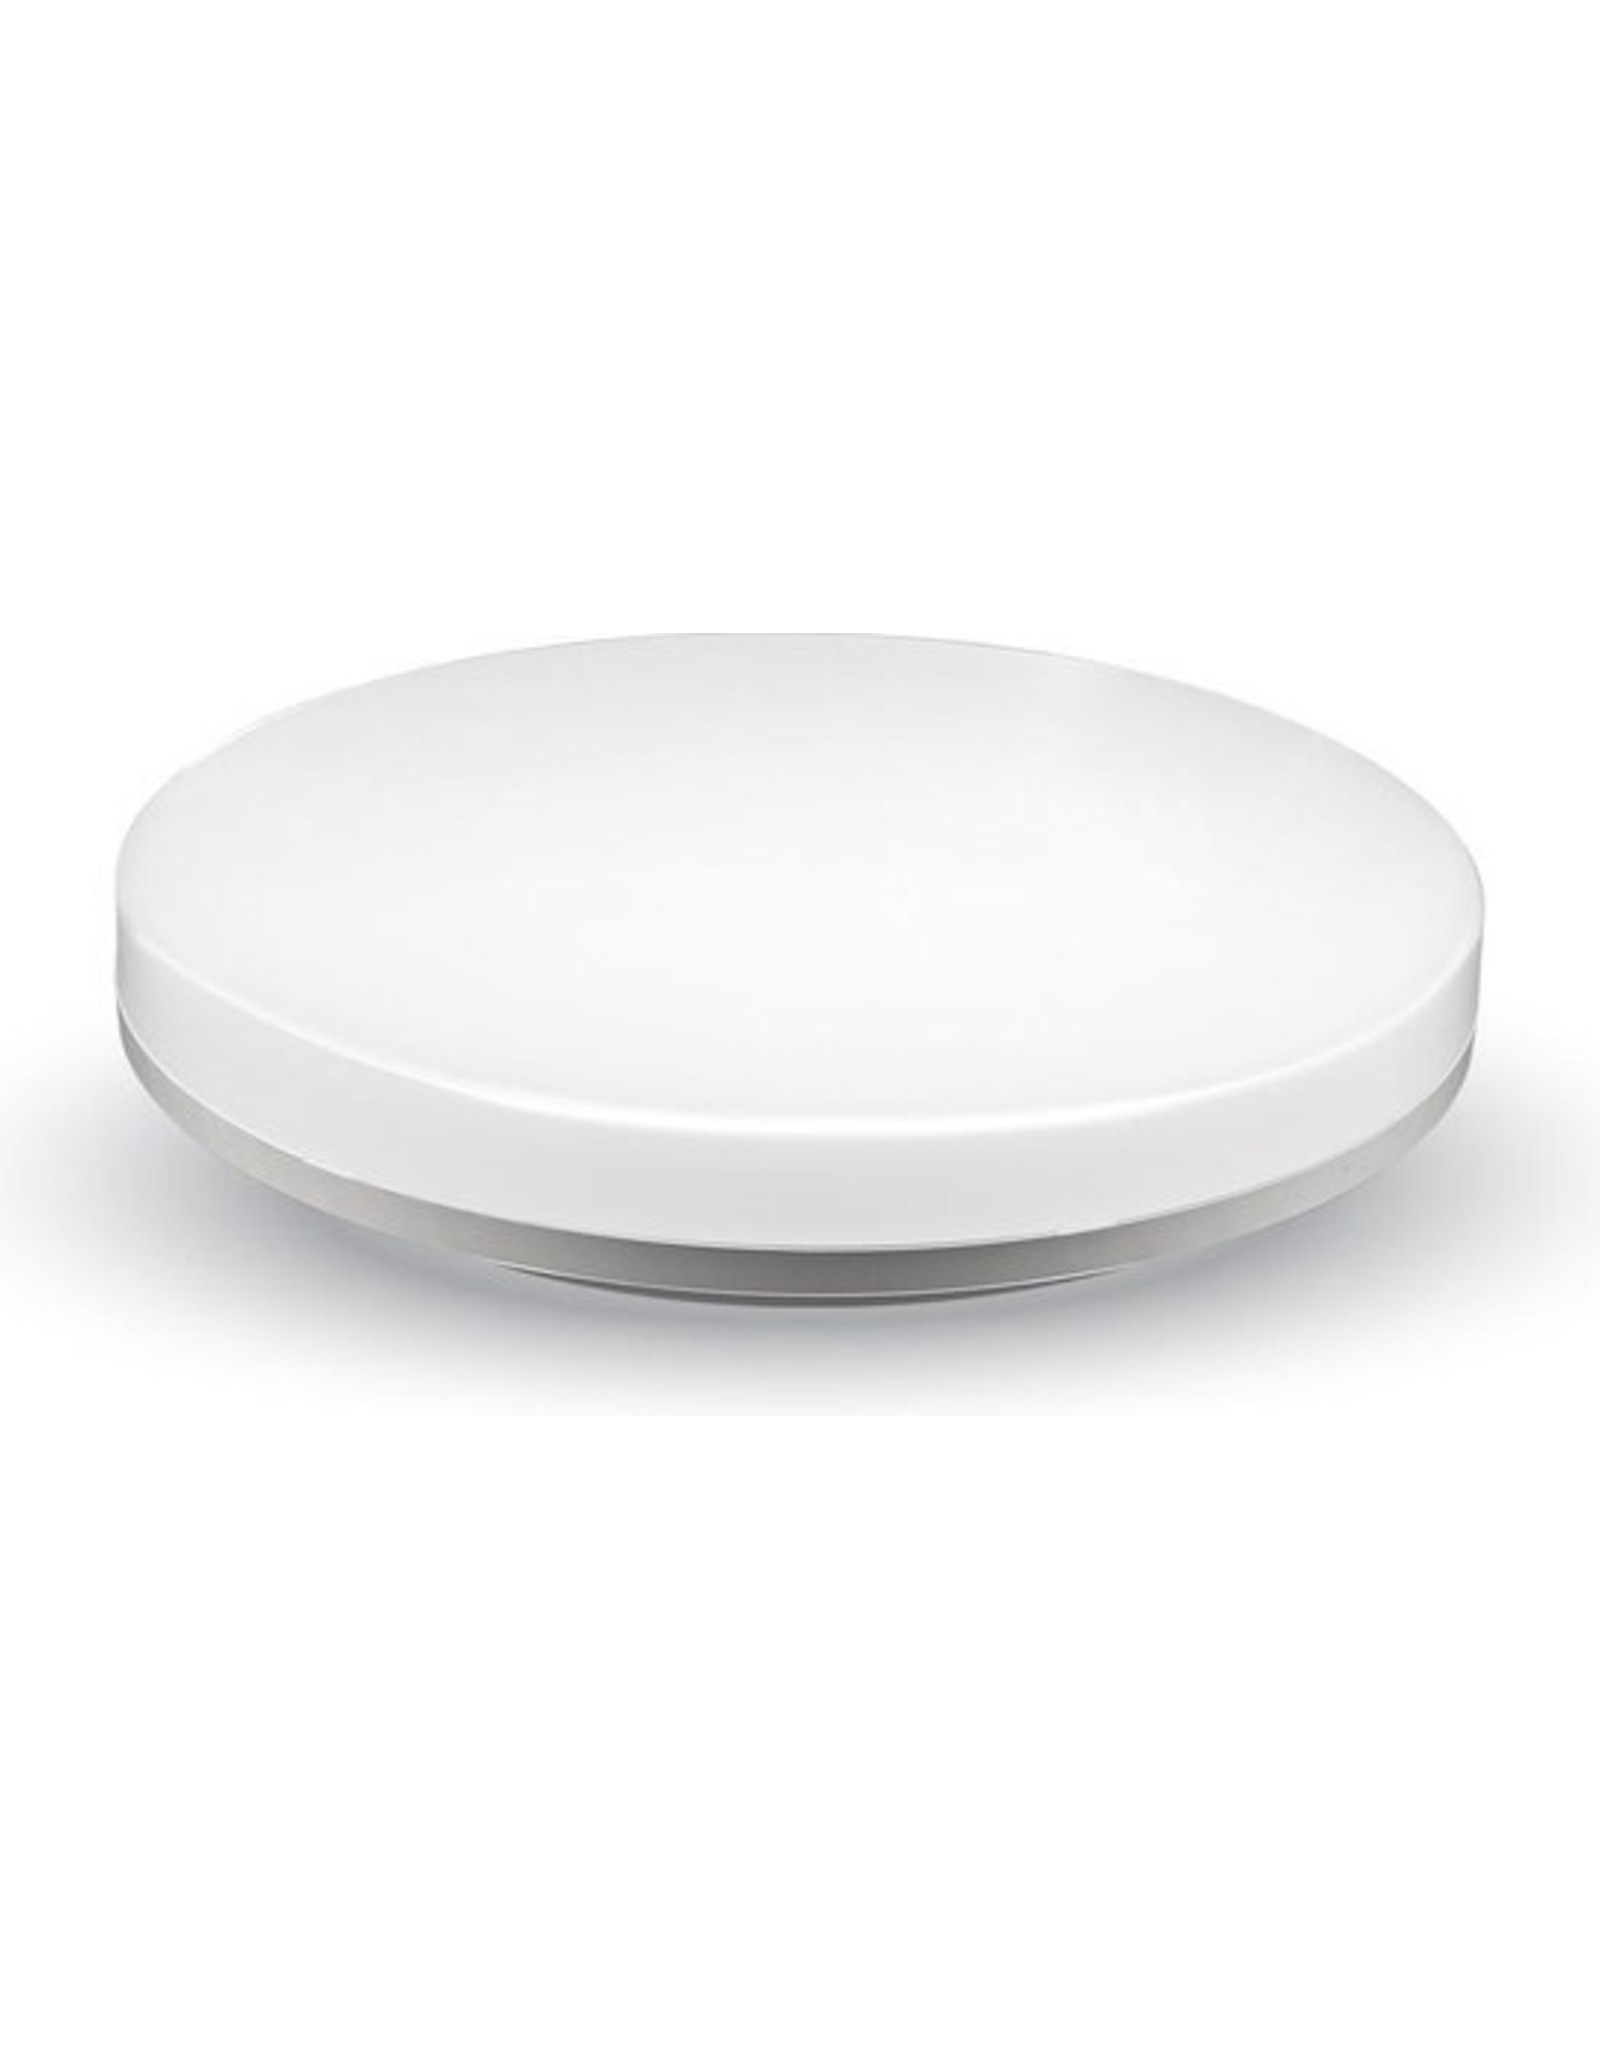 V-tac V-Tac VT-8033 LED Ceiling light - White - Round